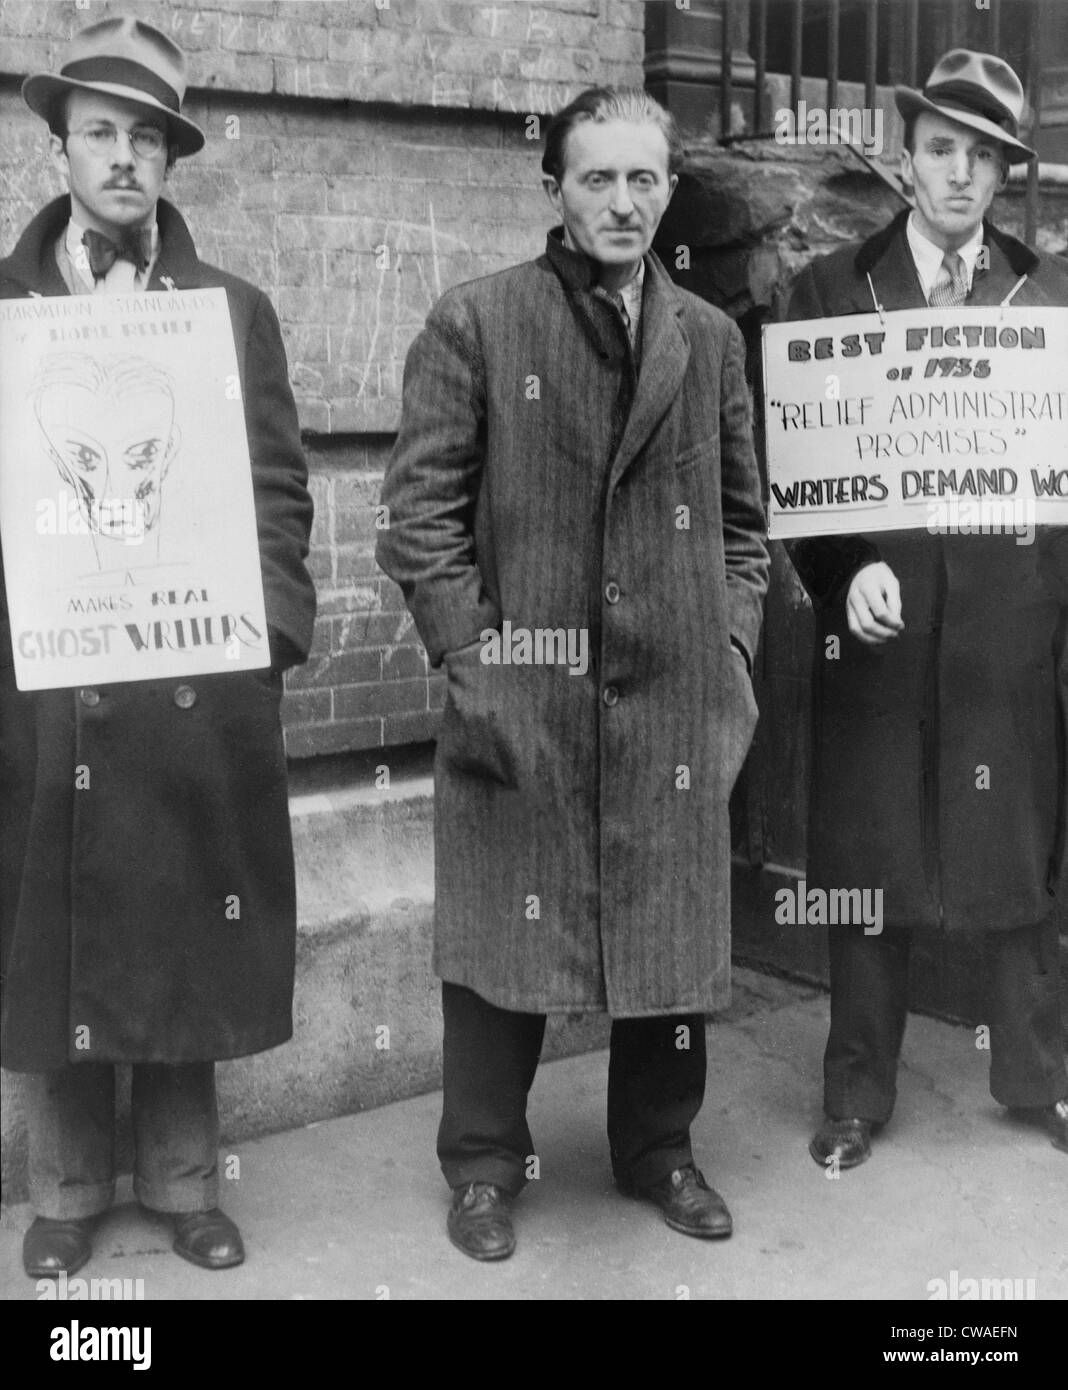 Maxwell Bodenheim (1893-1954), Greenwich Village poet, and three supporters with signs, asking for relief money - Stock Image